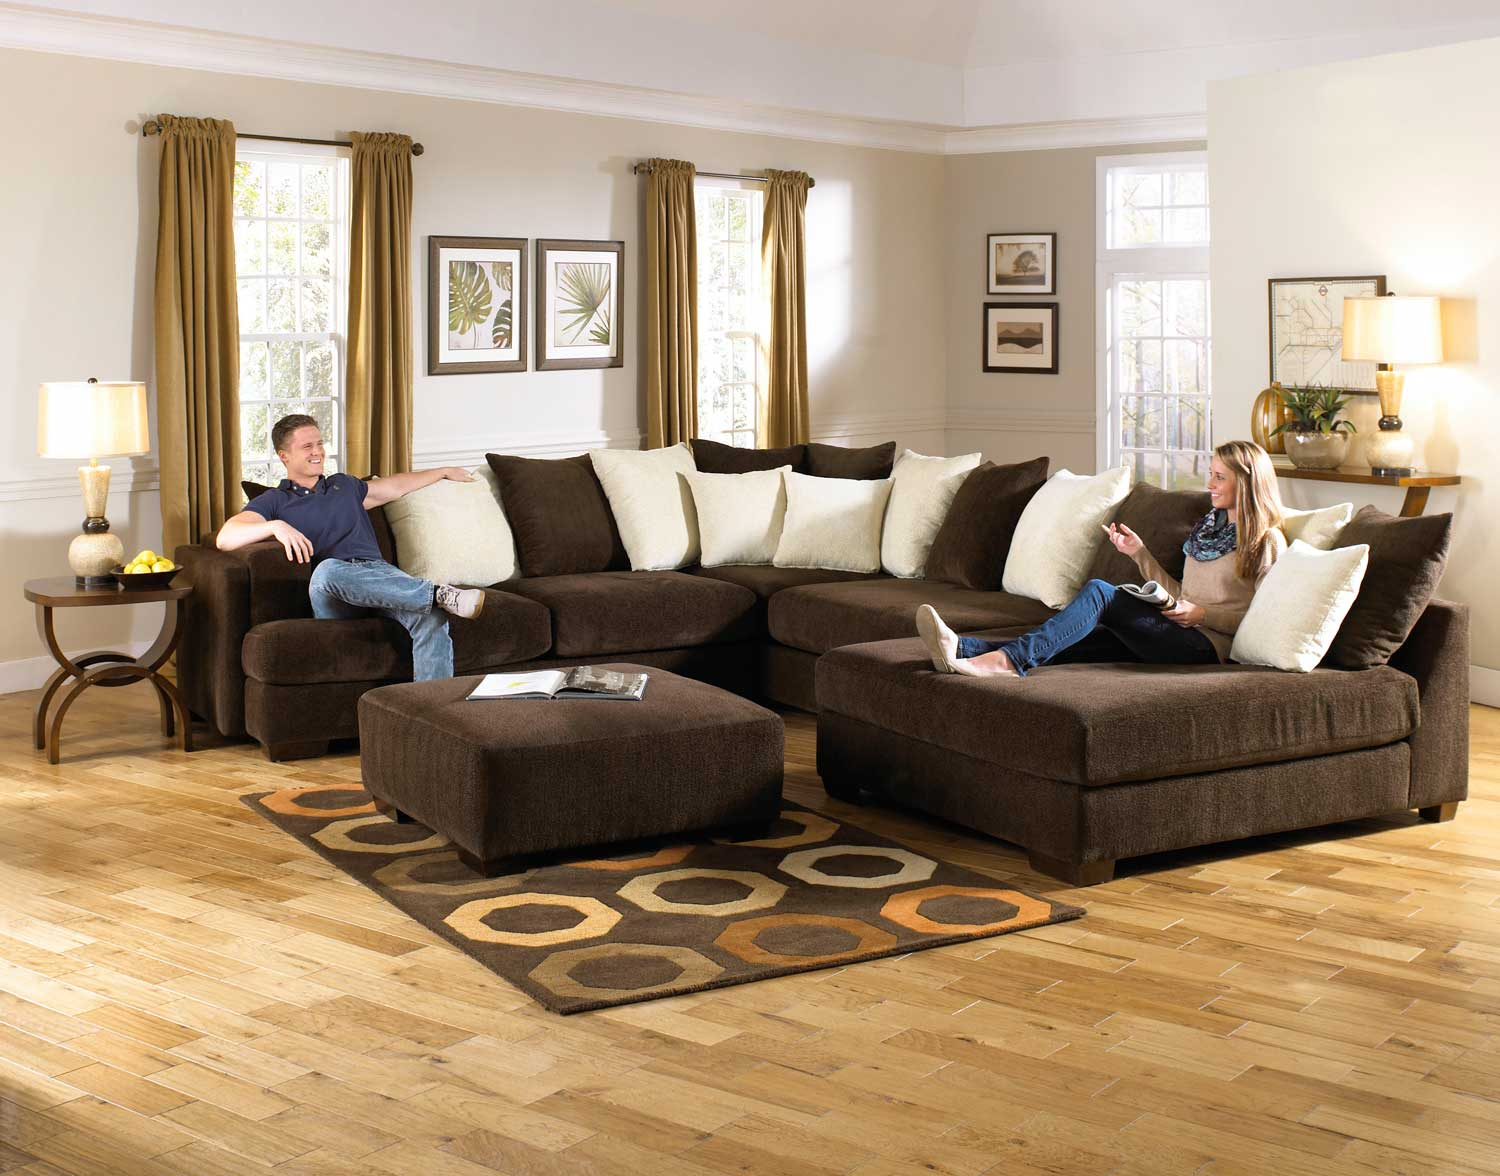 axis sofa reviews beds next day delivery london jackson large sectional set - chocolate jf-4429 ...